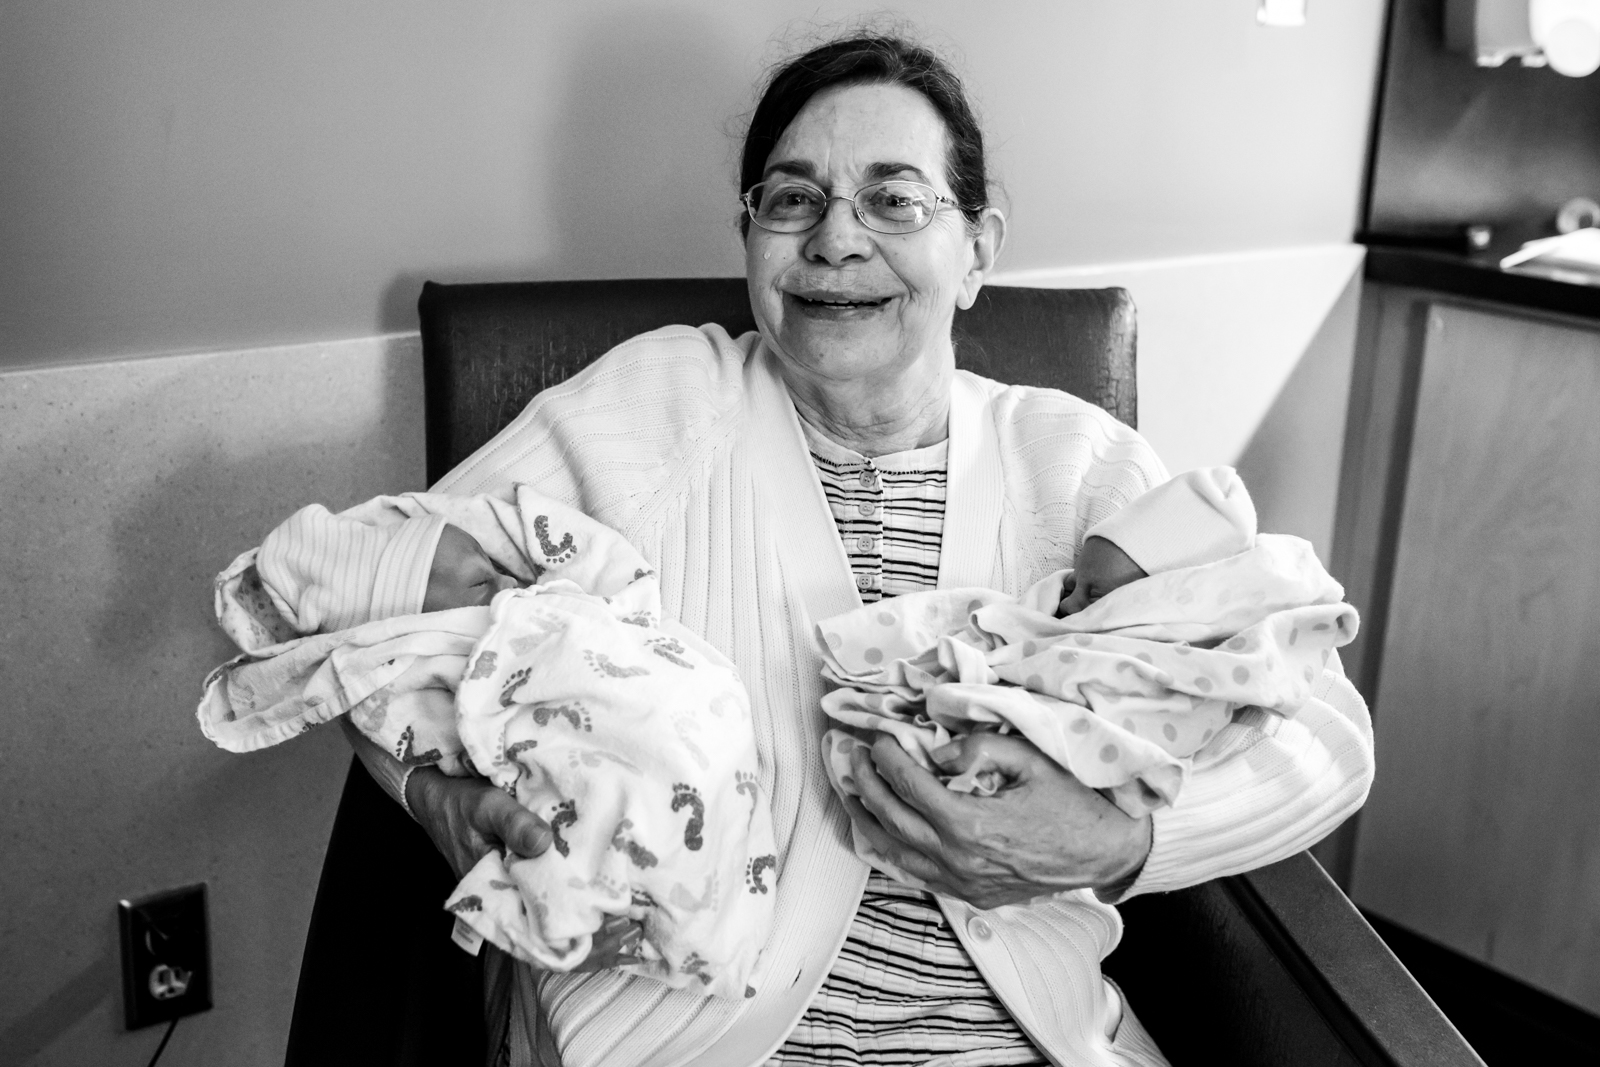 grandma holds her twin grand babies